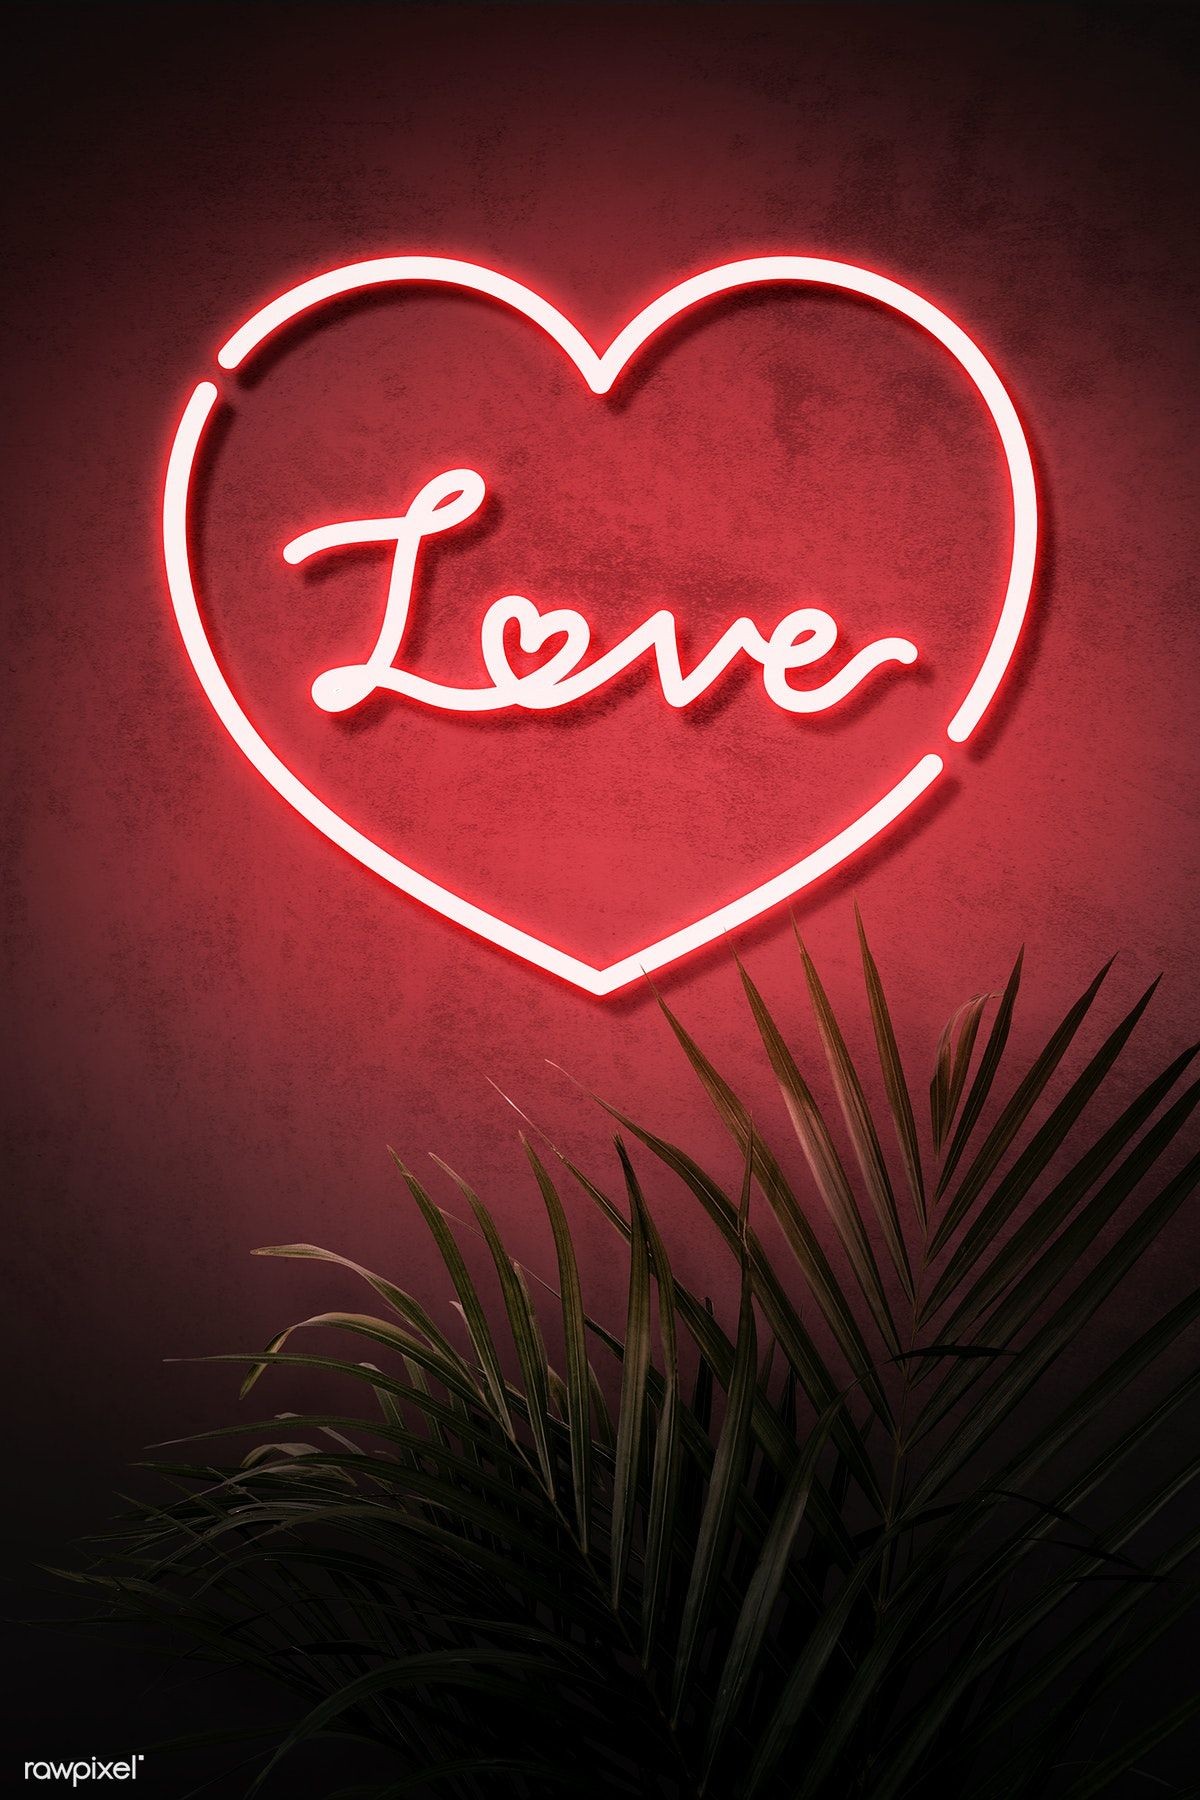 Neon Red Heart Frame With Love On A Wall Premium Image By Rawpixel Com Nam Vector Vectoart Digitalpainting Digitalartist Neon Signs Love Neon Sign Neon